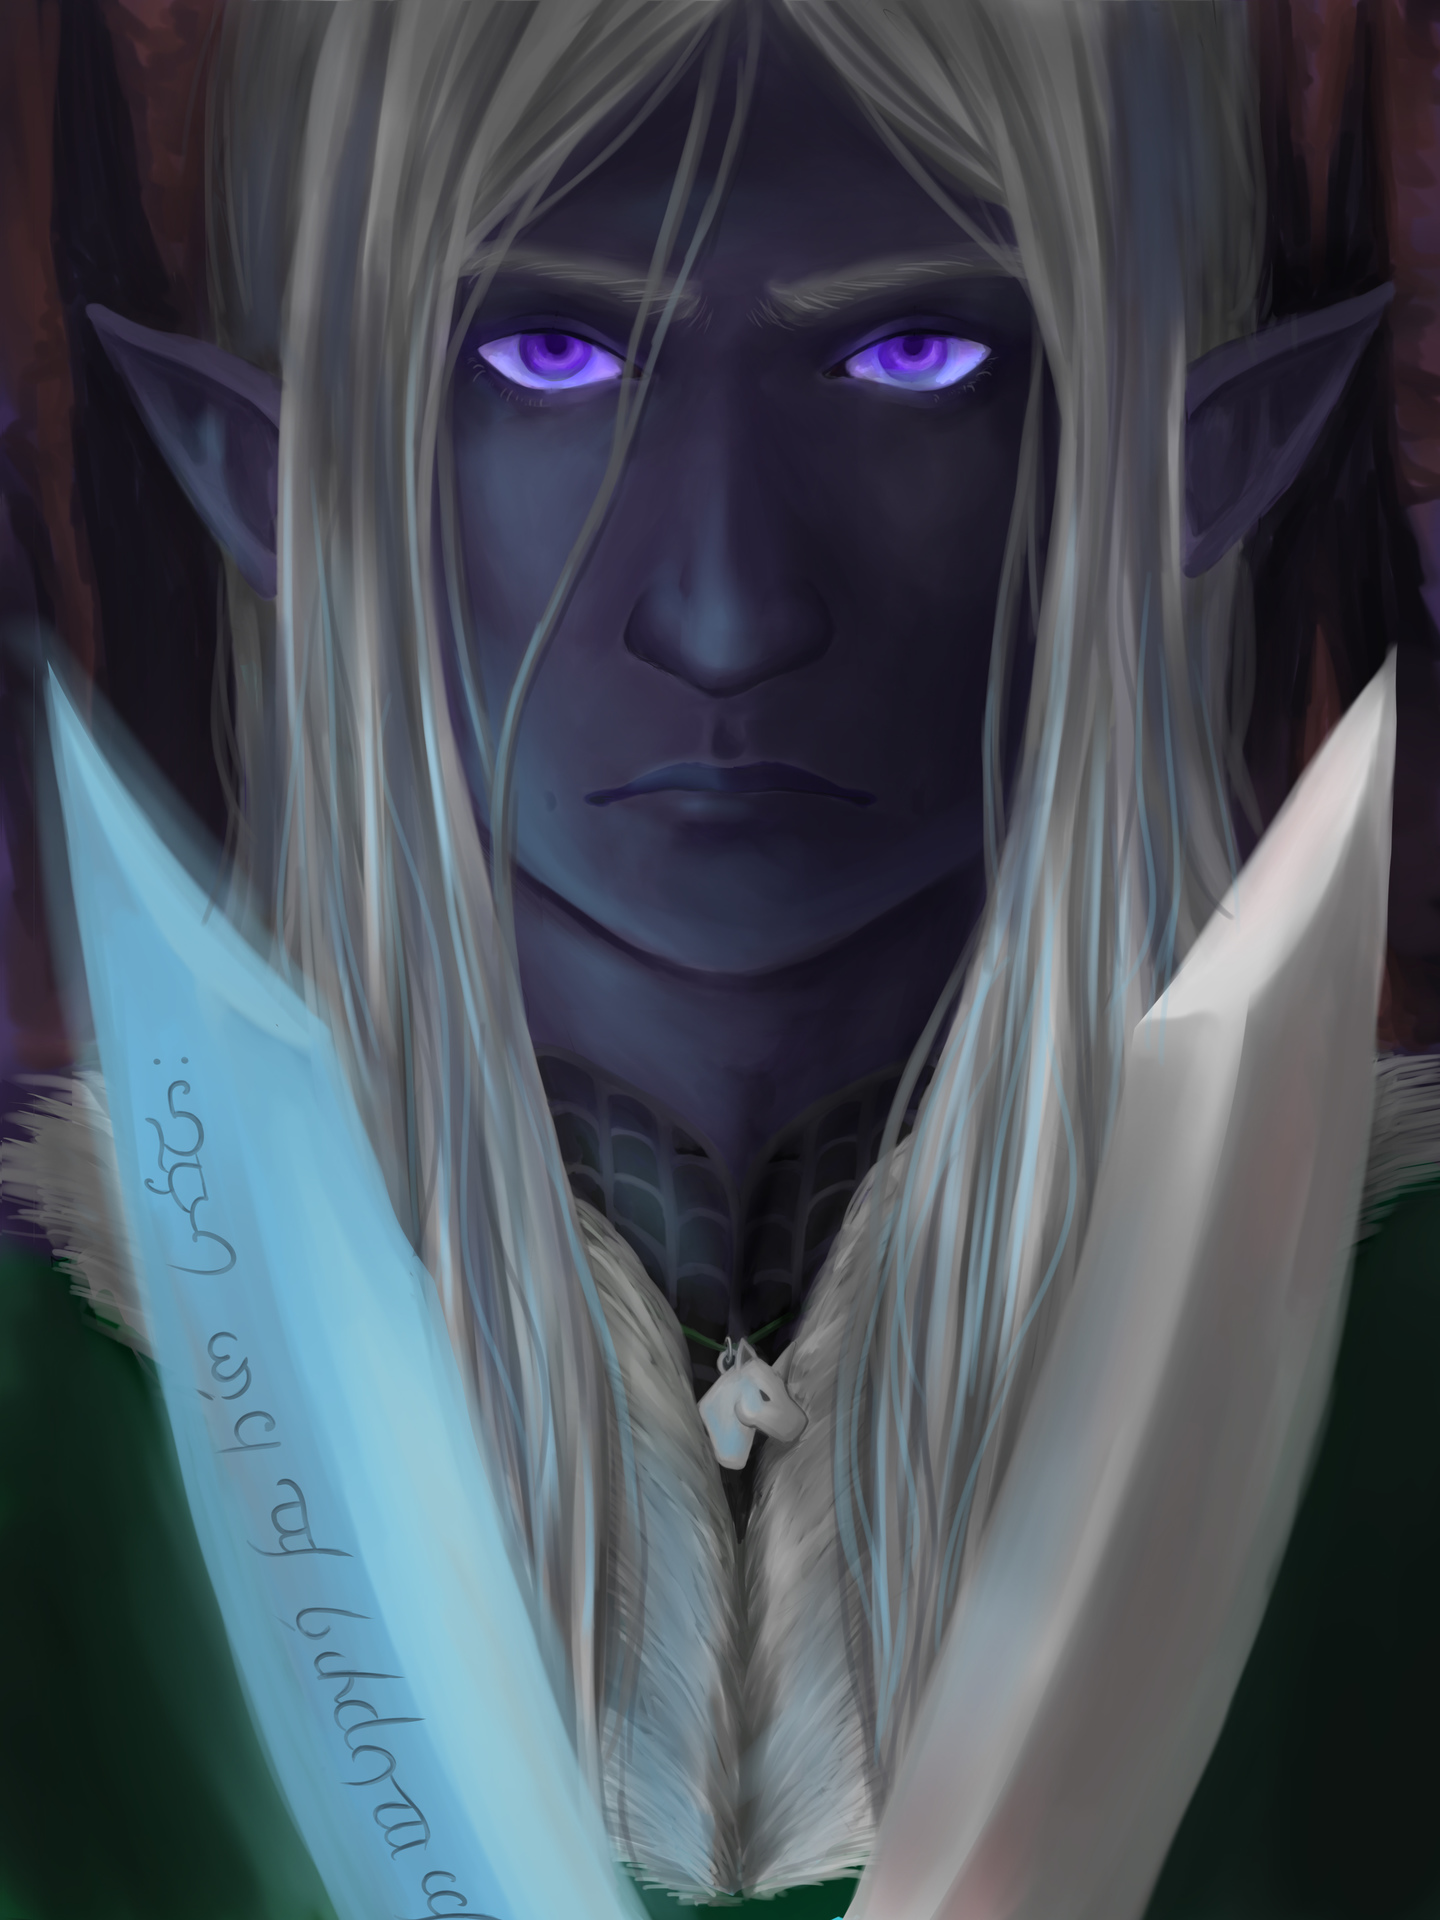 Digital painting of Drizzt D'Urden from the Legend of Drizzt